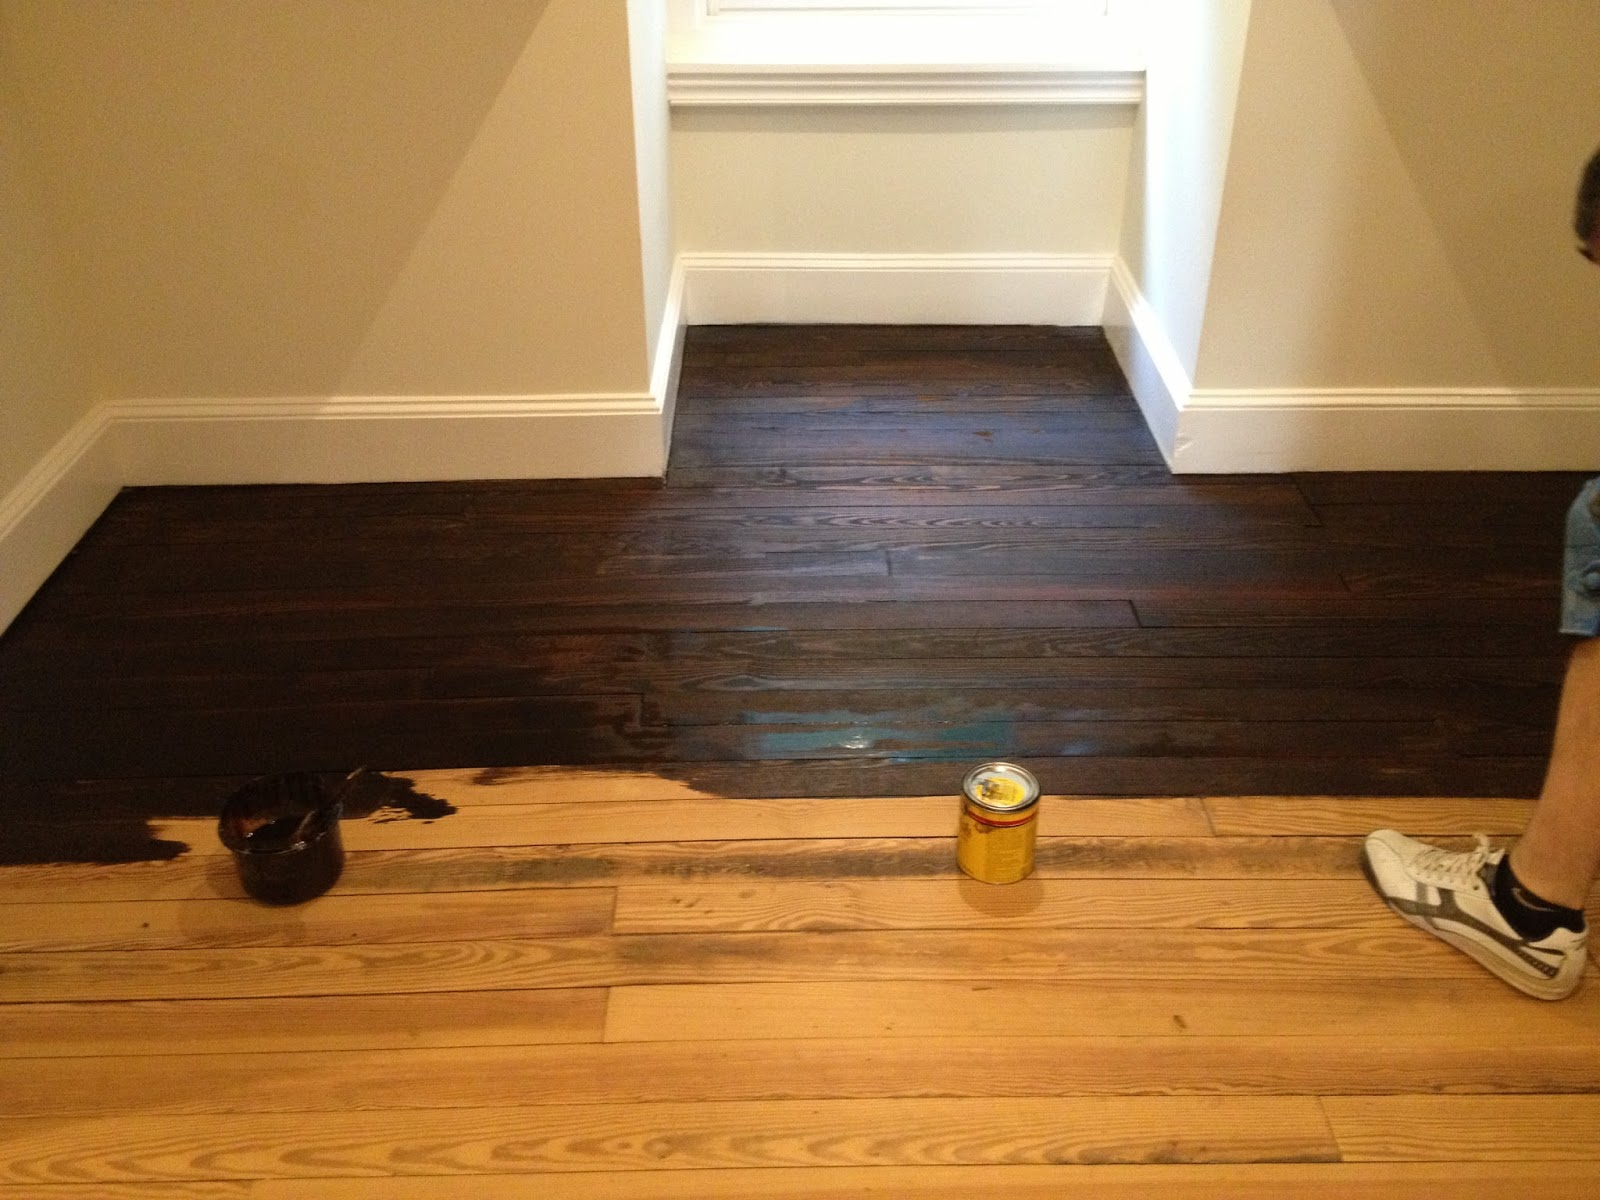 High street market 3rd floor refinished hardwood floor diy solutioingenieria Choice Image